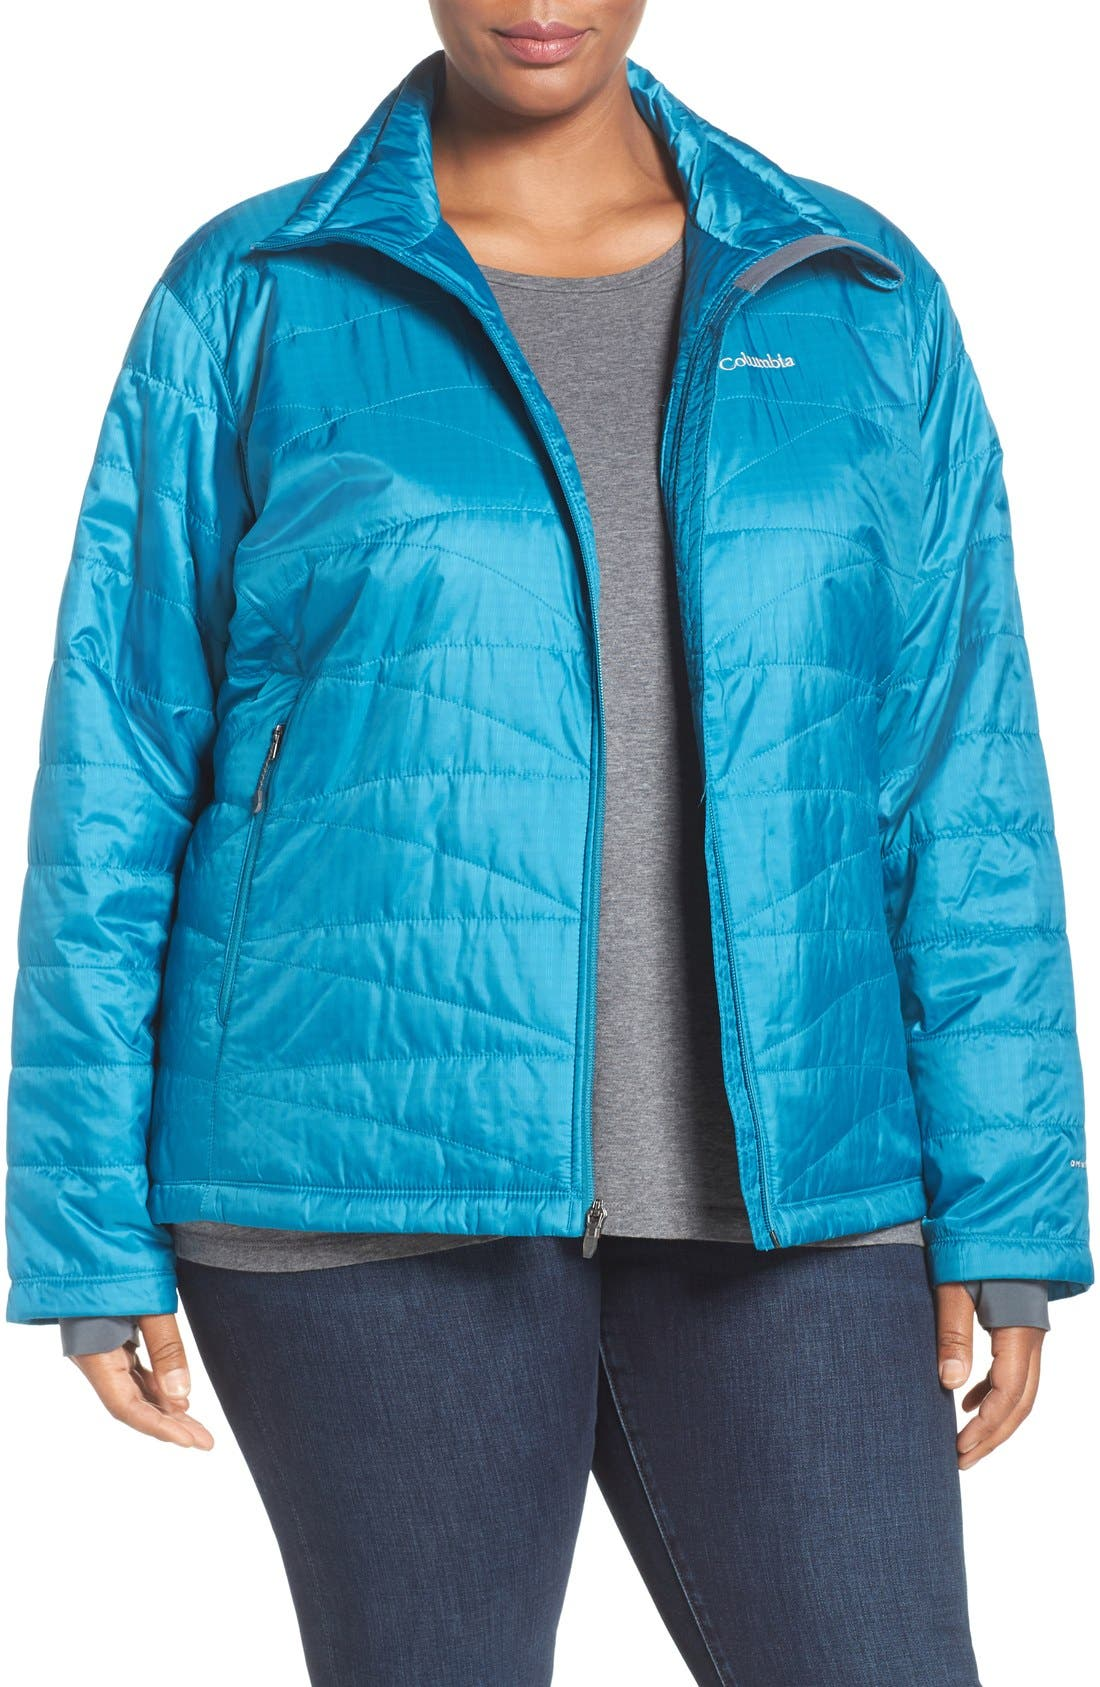 Alternate Image 1 Selected - Columbia 'Mighty Lite' Jacket (Plus Size)